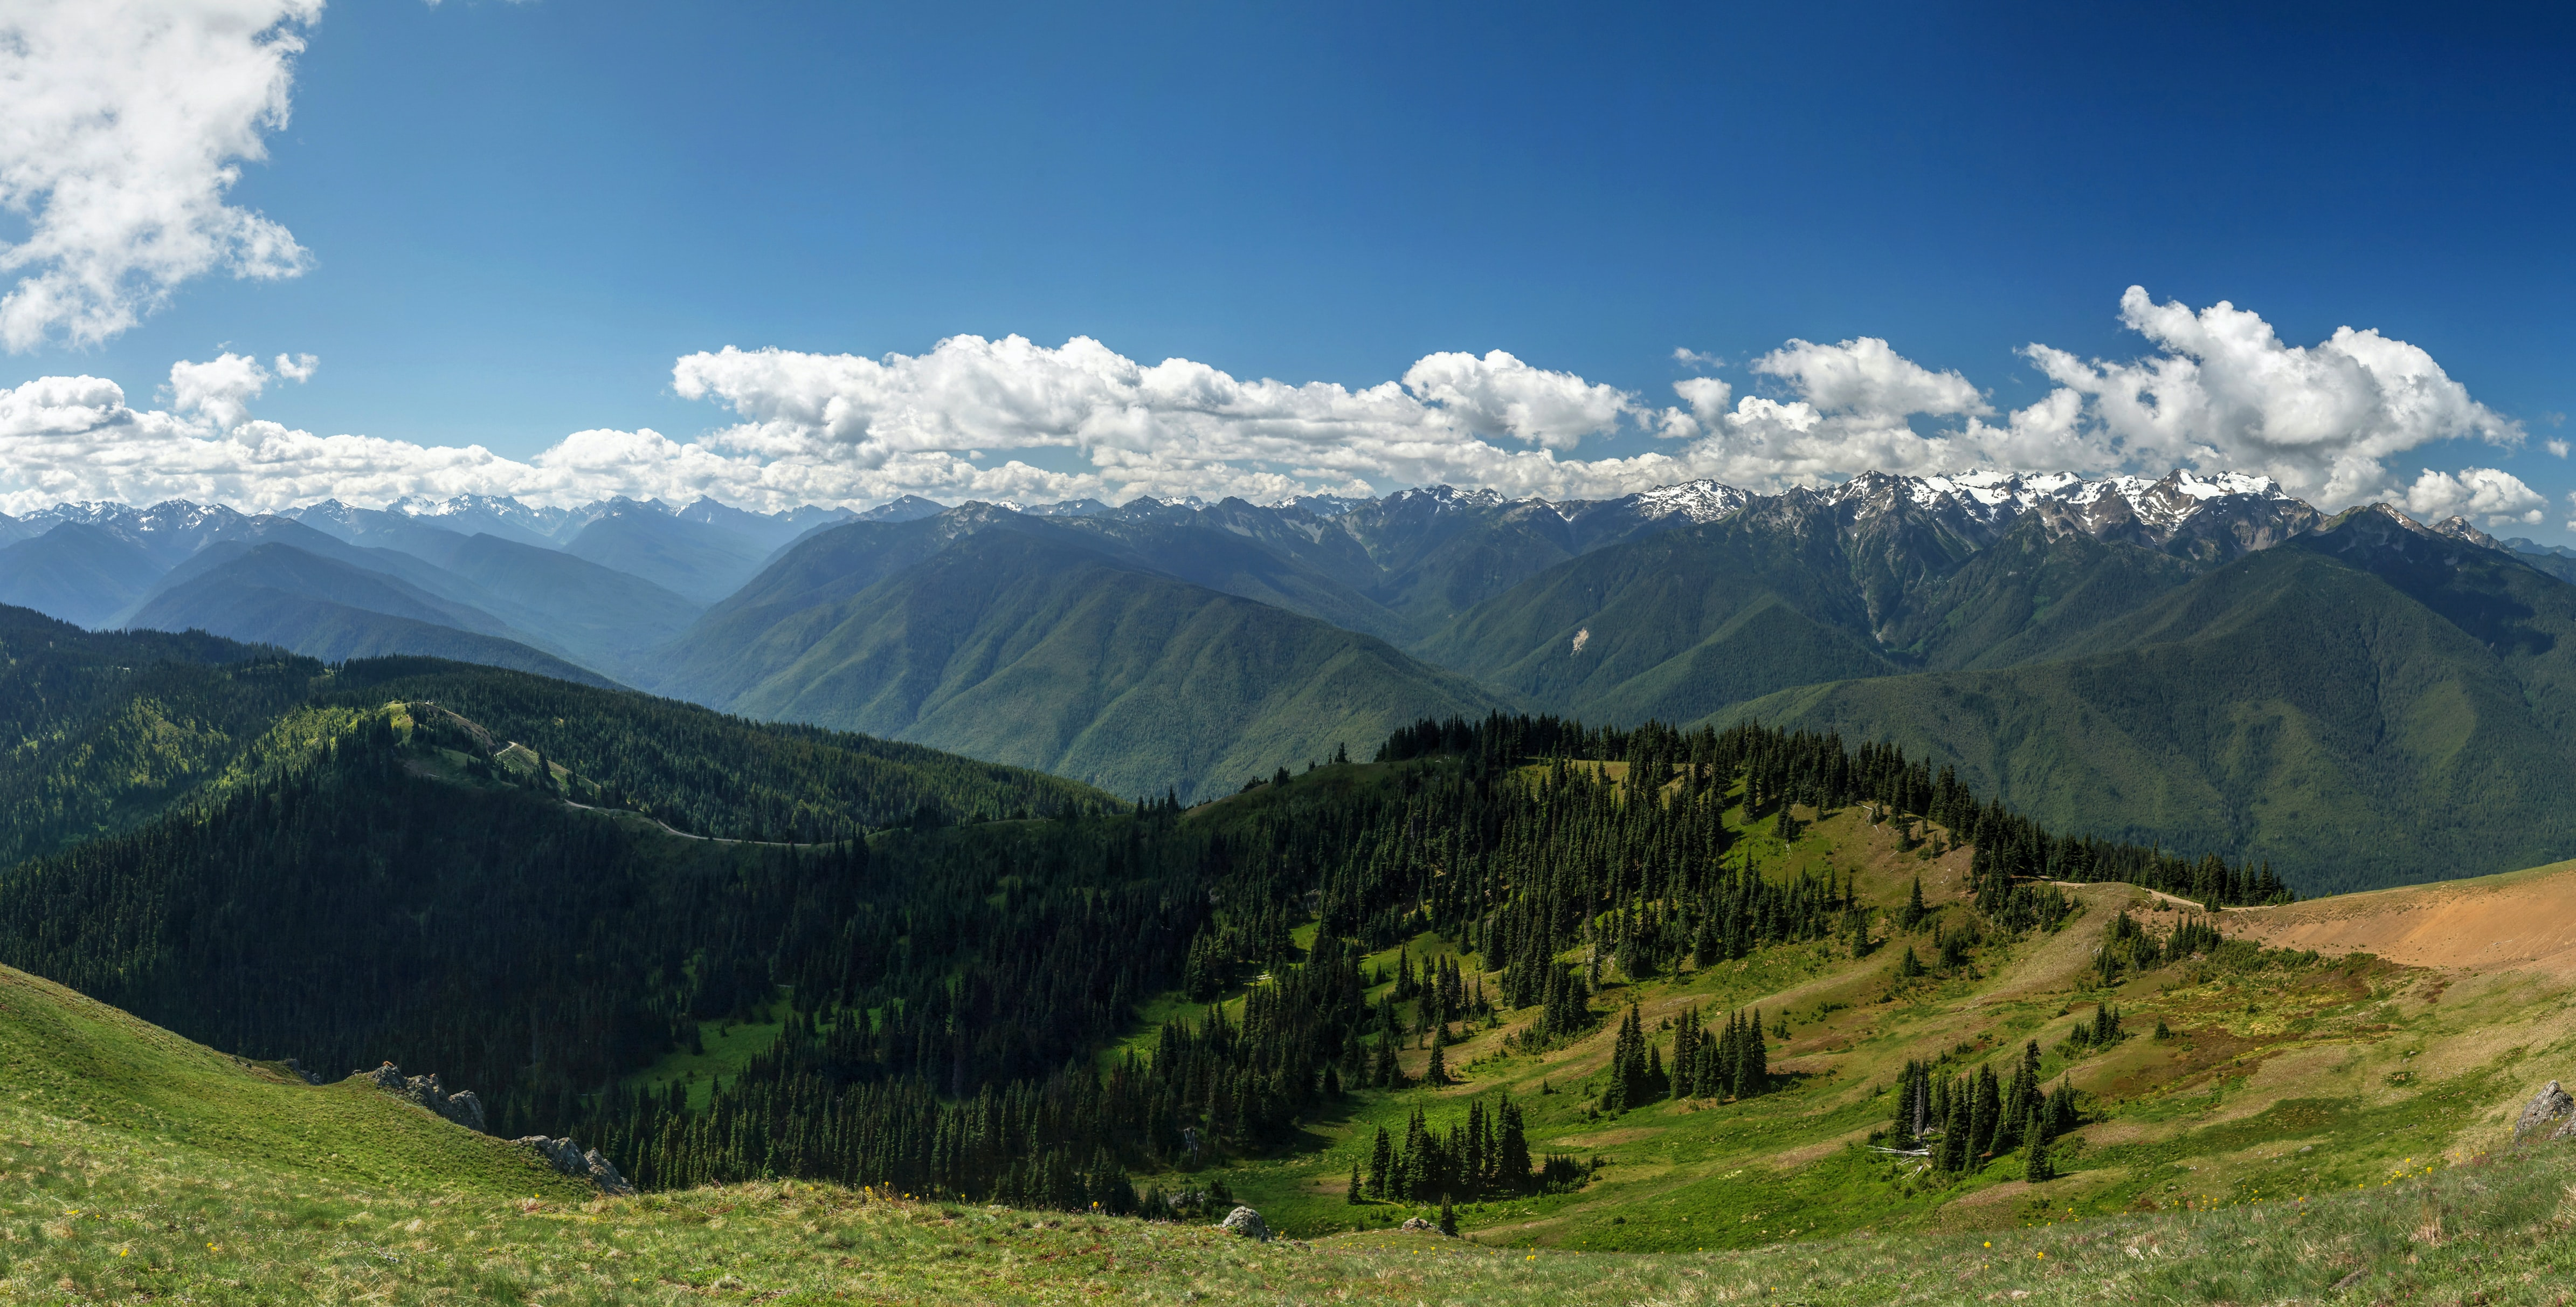 Green mountains with snow-topped crests under fluffy clouds